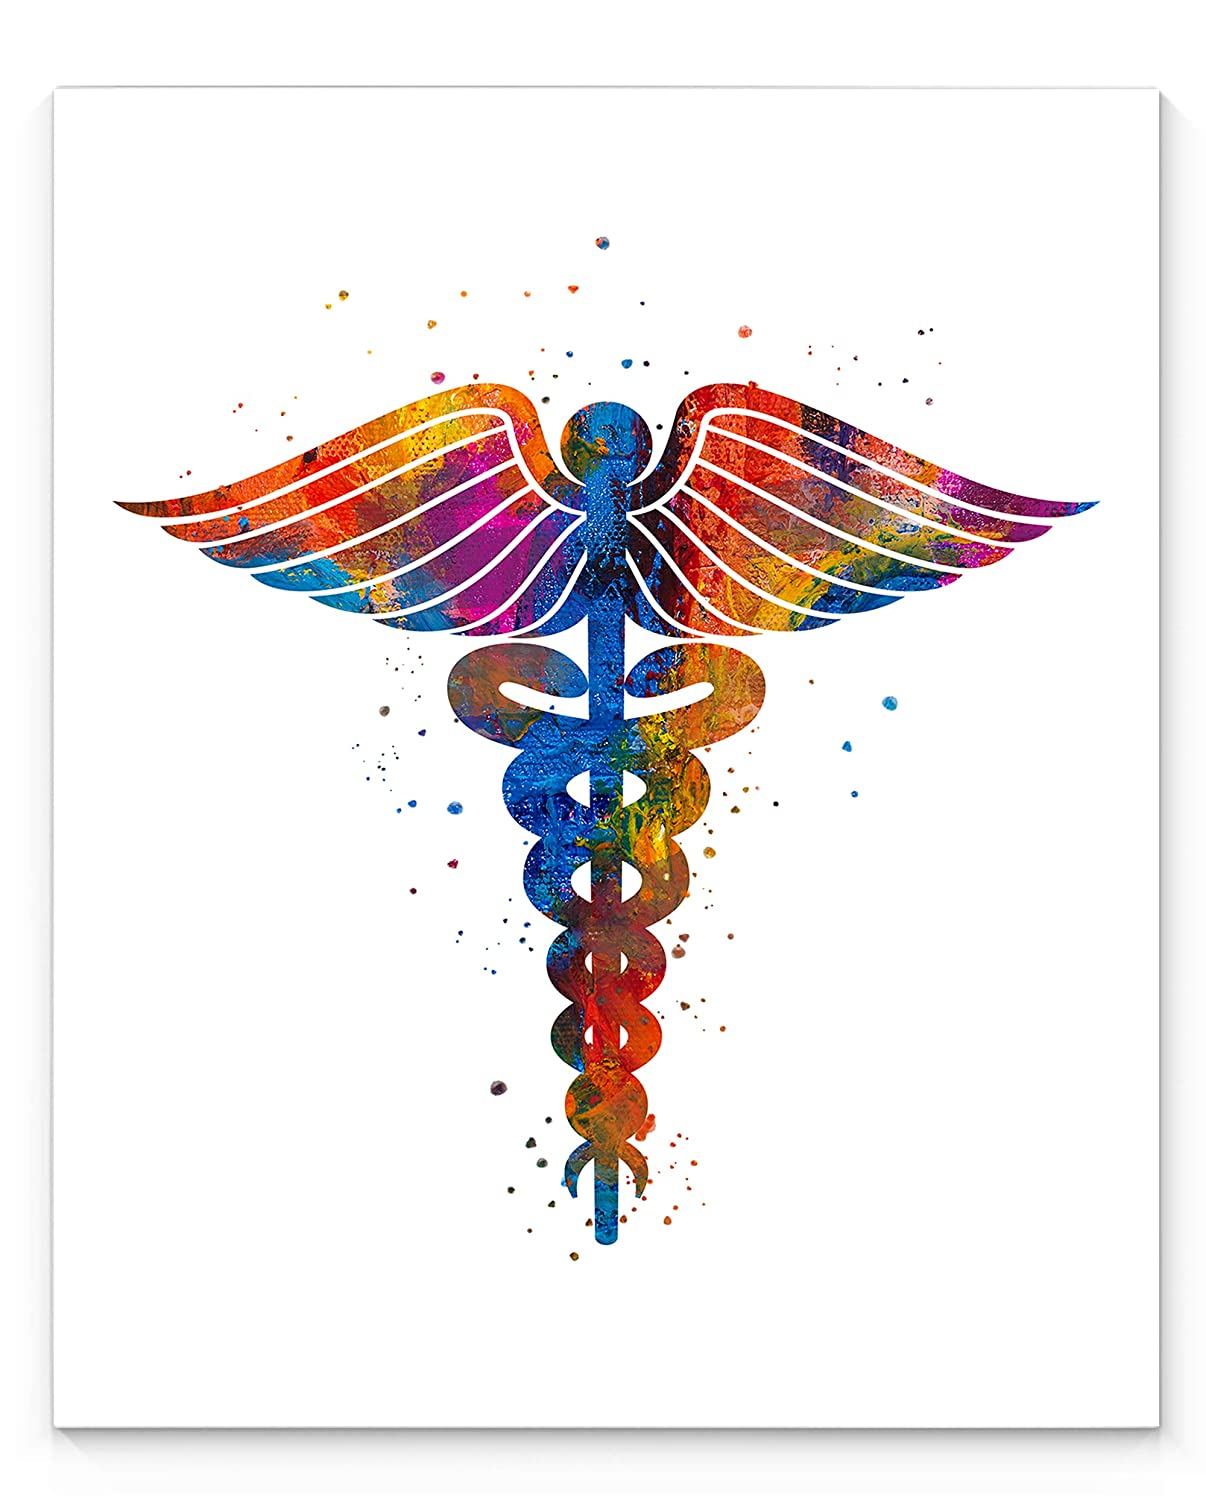 Caduceus Medical Symbol Abstract Wall Art, 11x14 inch Ready to Frame Print on White Background, Ideal for Doctors, Nurses, Vets and Medical Professionals, Clinic Decor